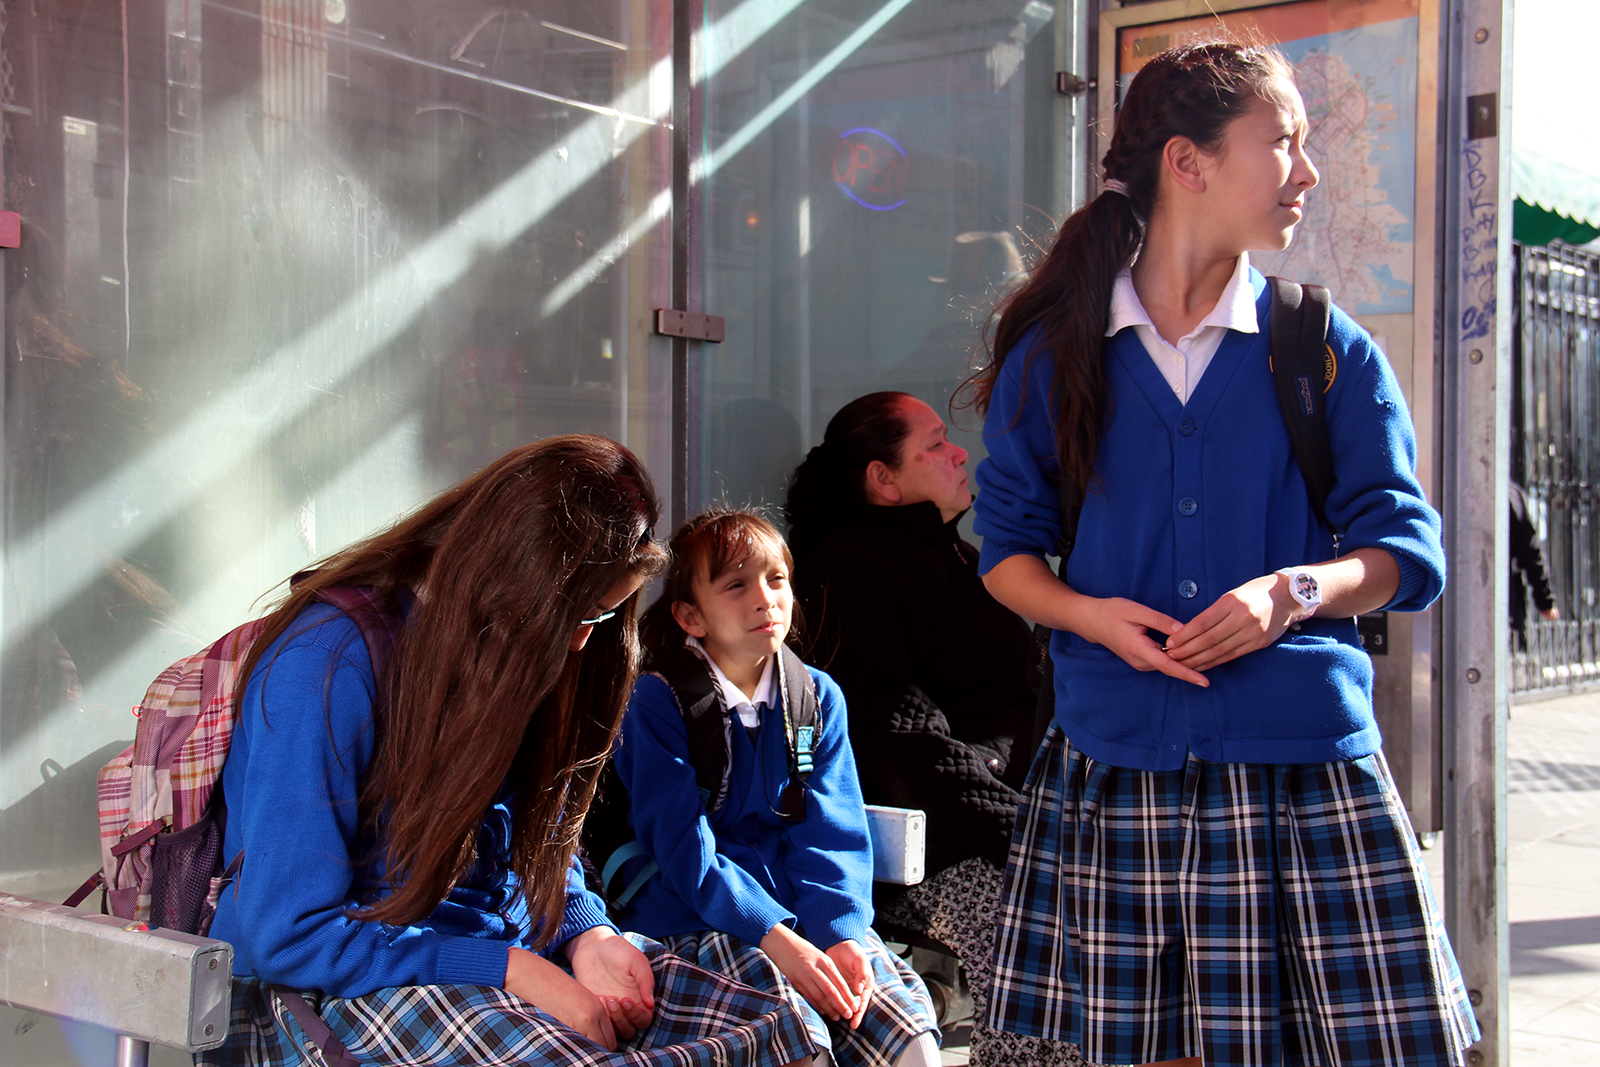 Young girls wait for the bus on Mission Street.